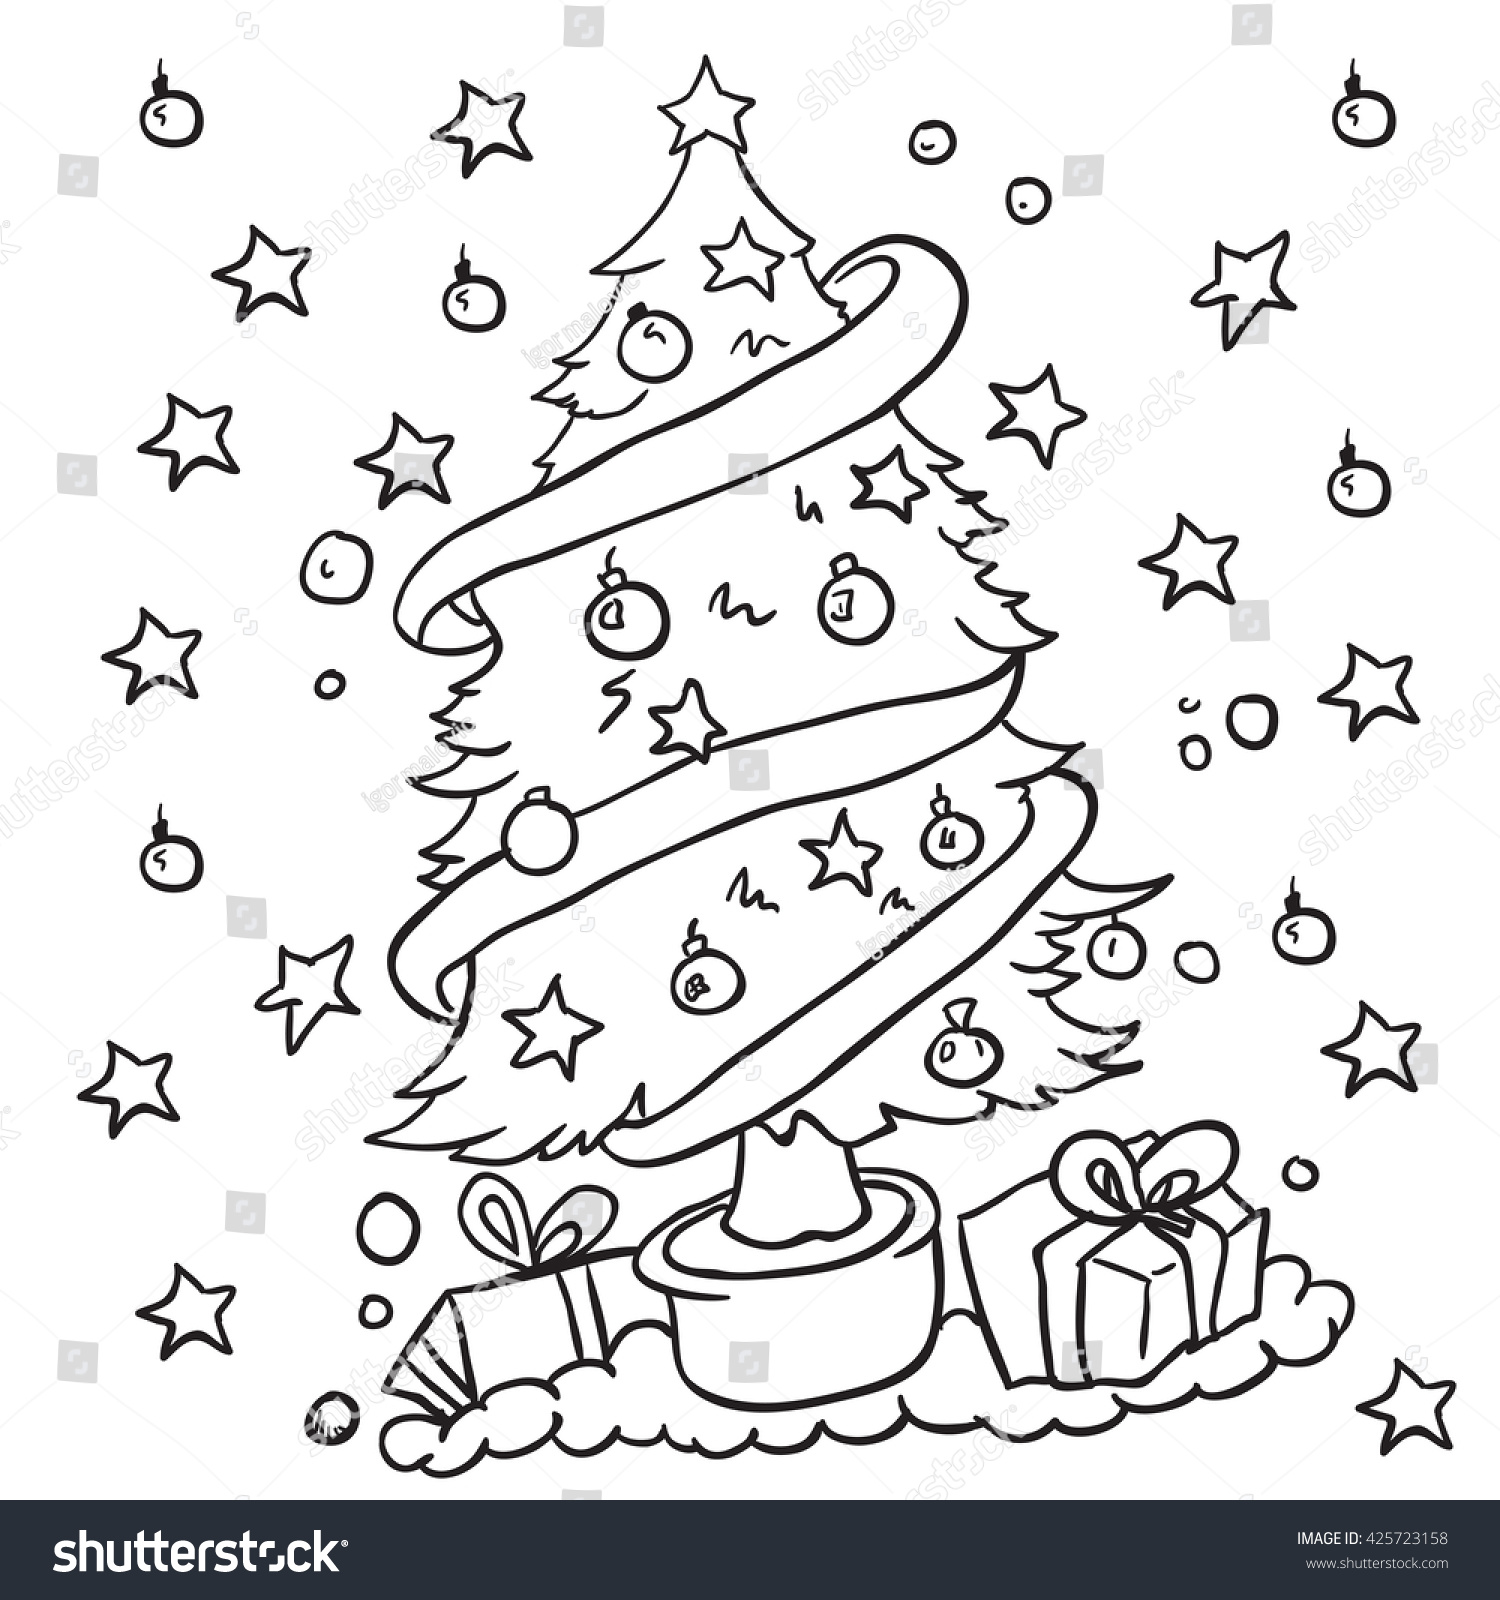 Black White Christmas Tree Cartoon Stock Vector Royalty Free 425723158 Tree wall art for your home decor, a cool poster for all people that are always children at heart. https www shutterstock com image vector black white christmas tree cartoon 425723158